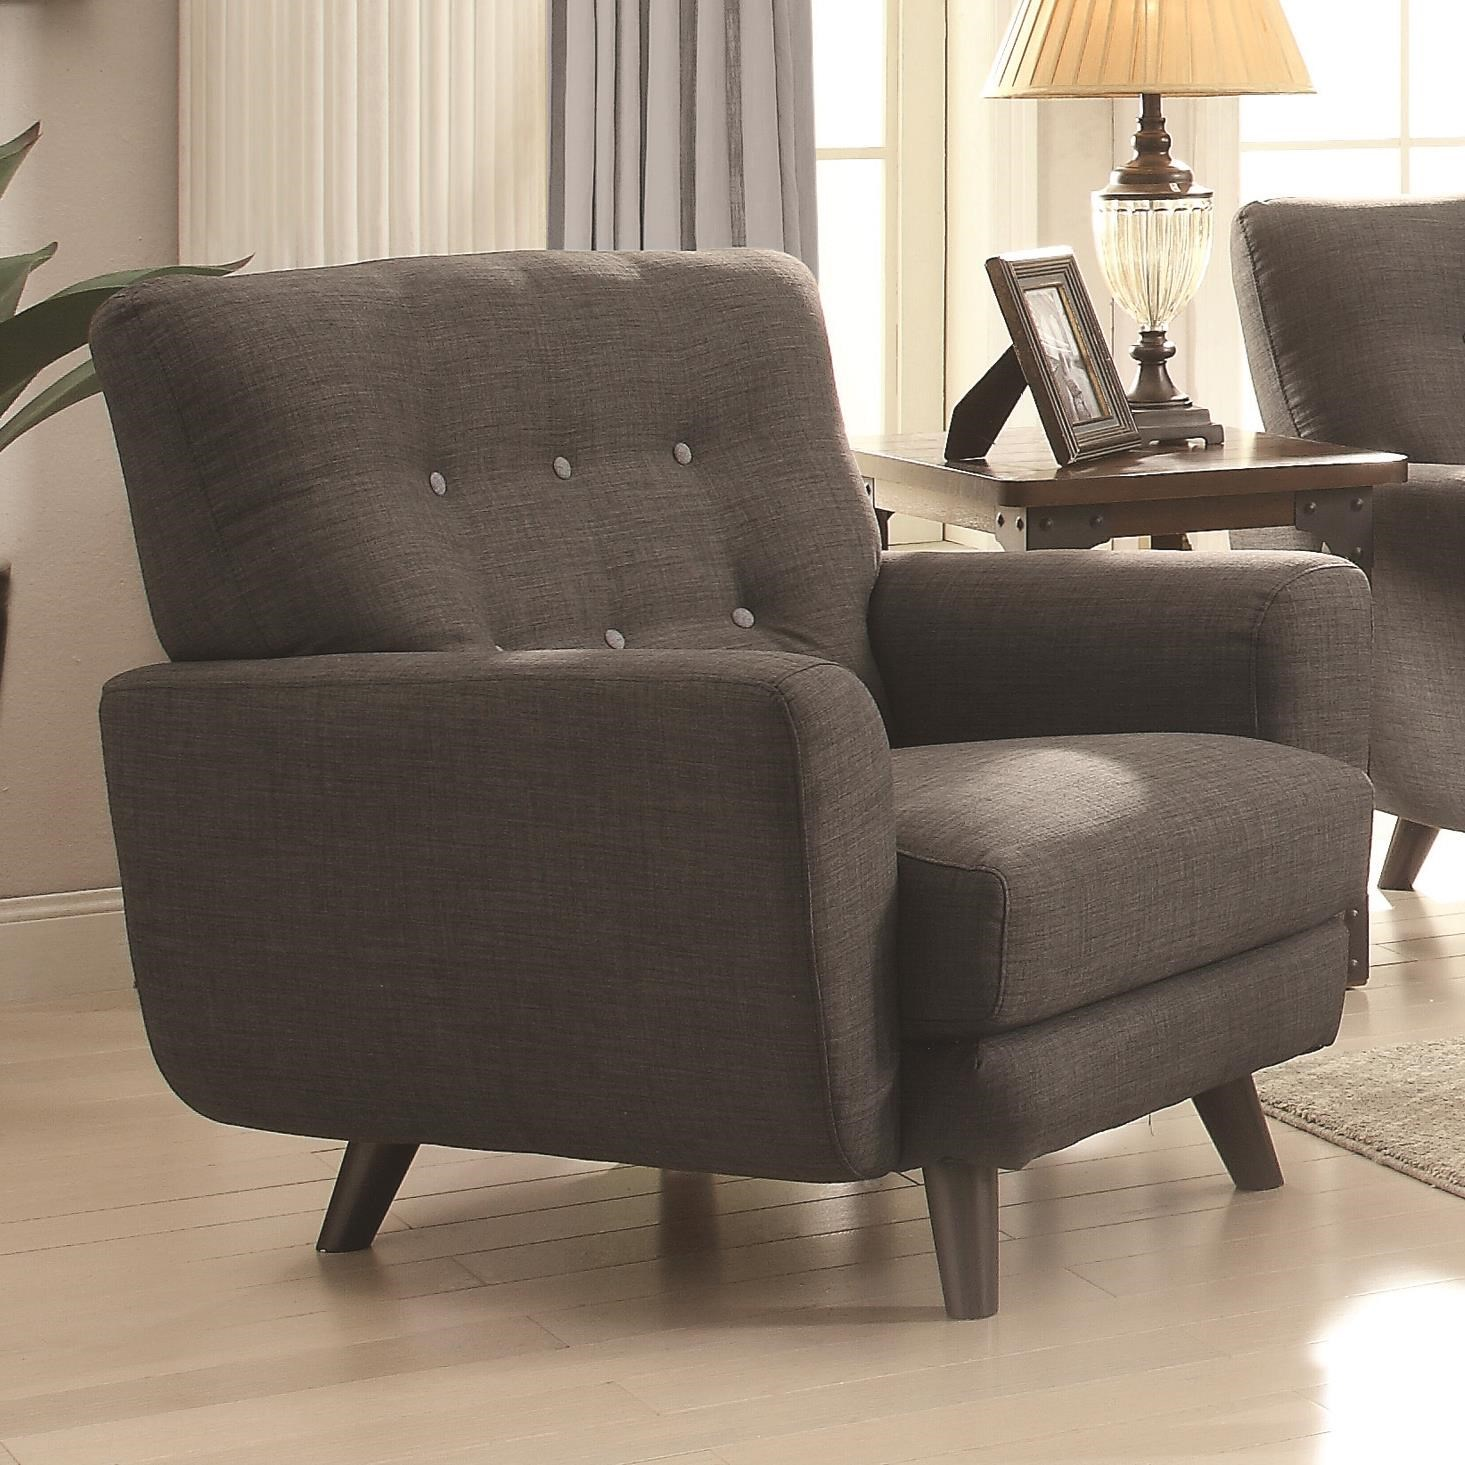 Northpoint Home Furnishings Quality Selection of Chairs in Durango